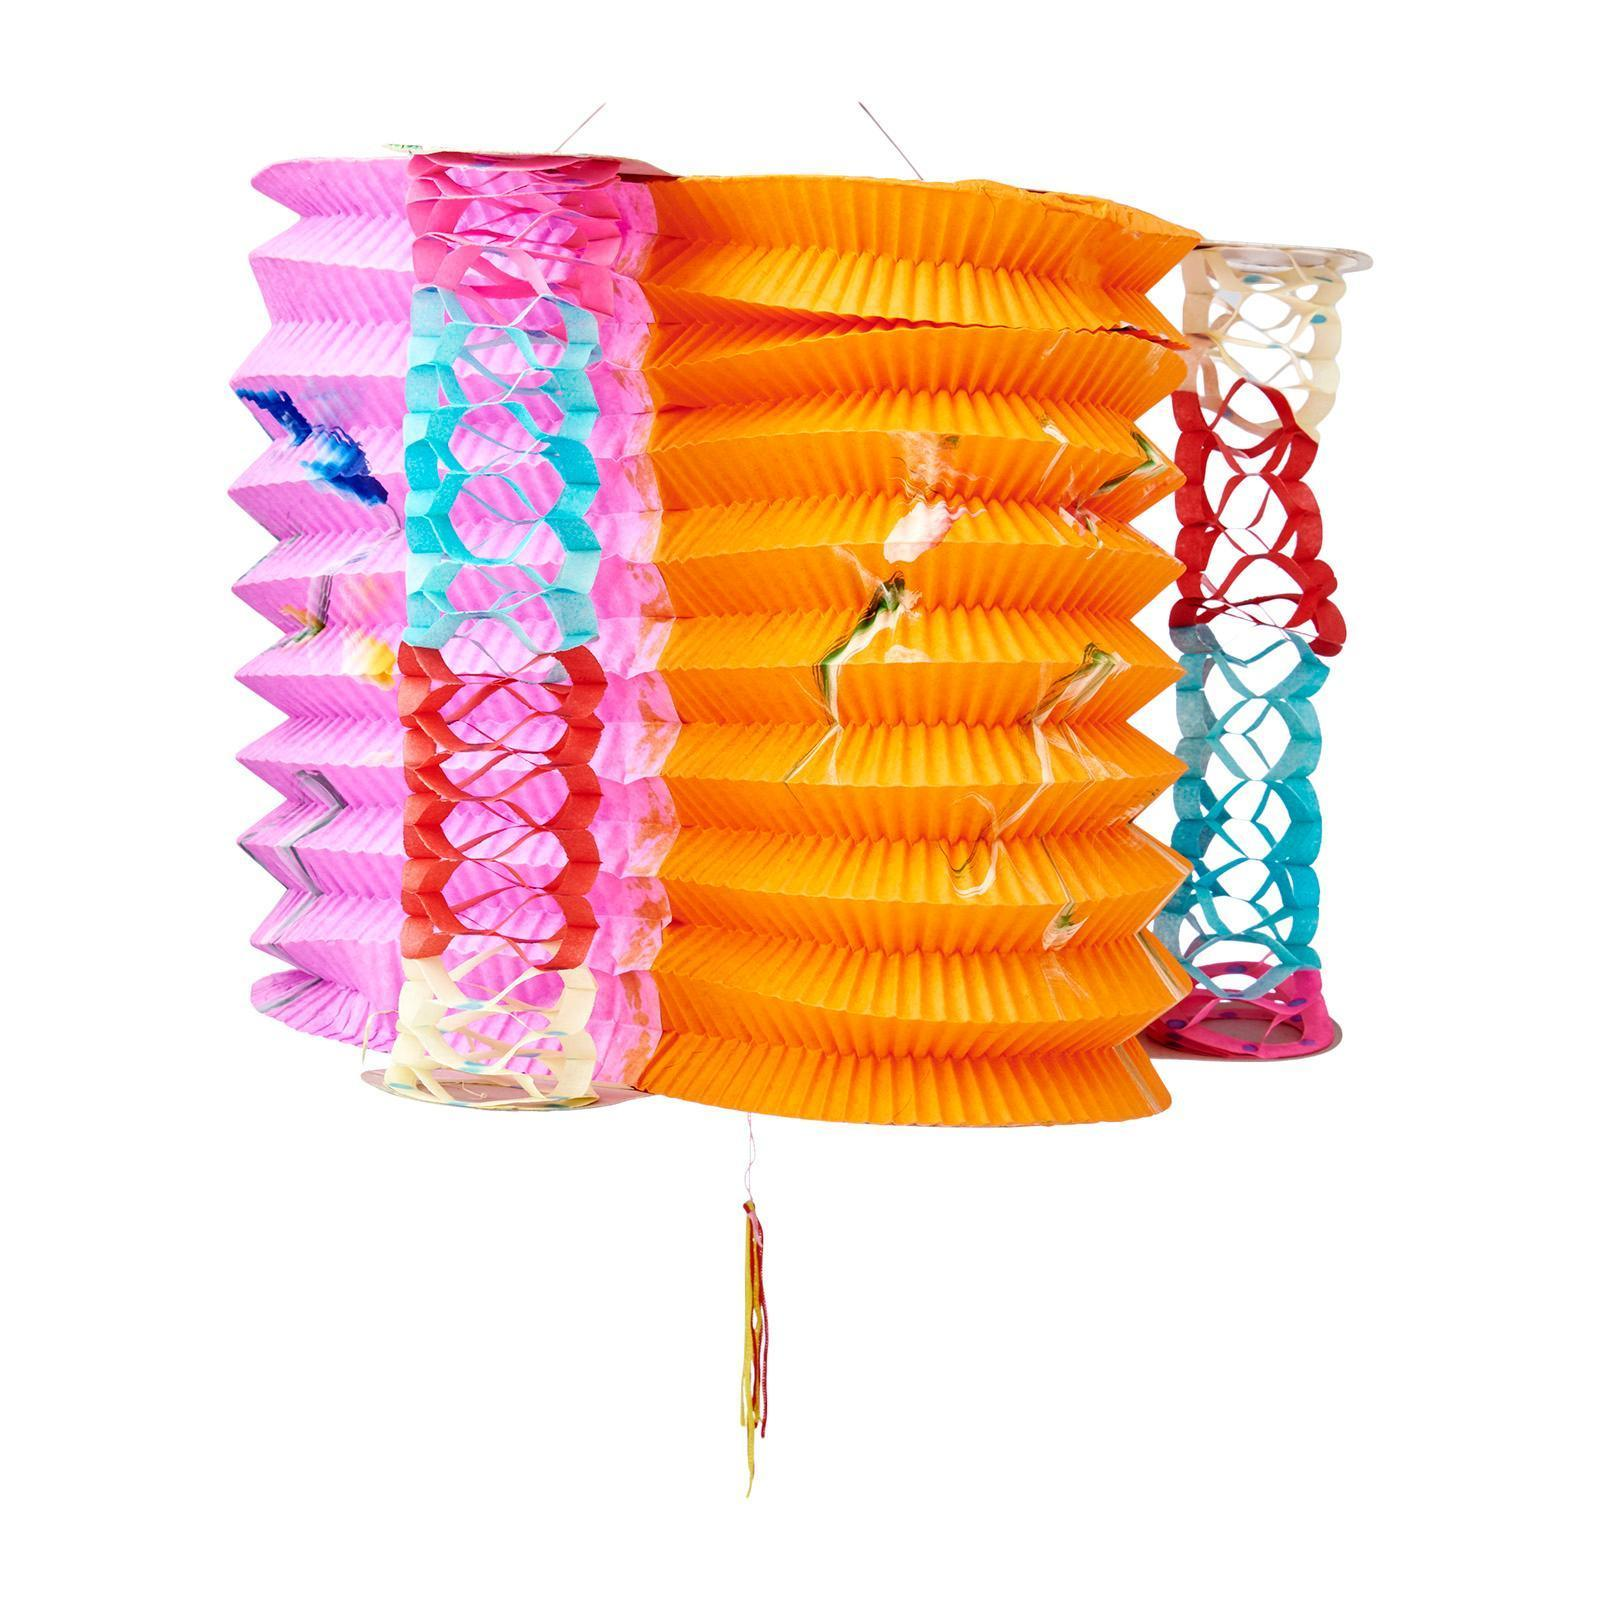 [LOCAL SELLER] 12PC #2894 Traditional Mid-Autumn Lantern Festival Column Paper Lantern